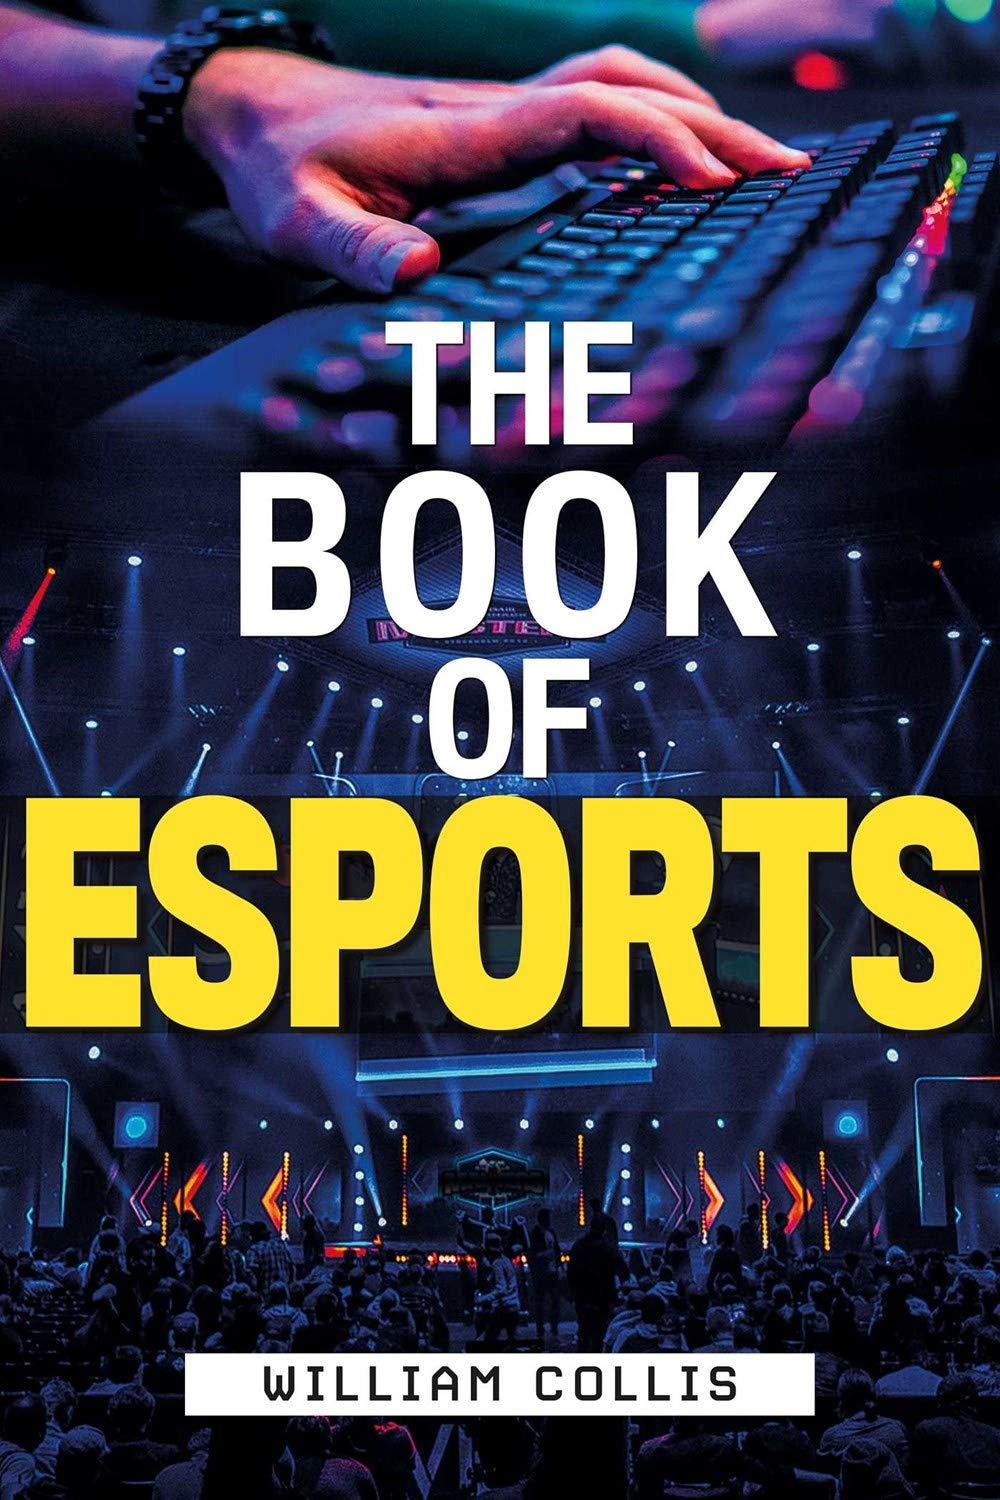 Image OfThe Book Of Esports: The Definitive Guide To Competitive Video Games